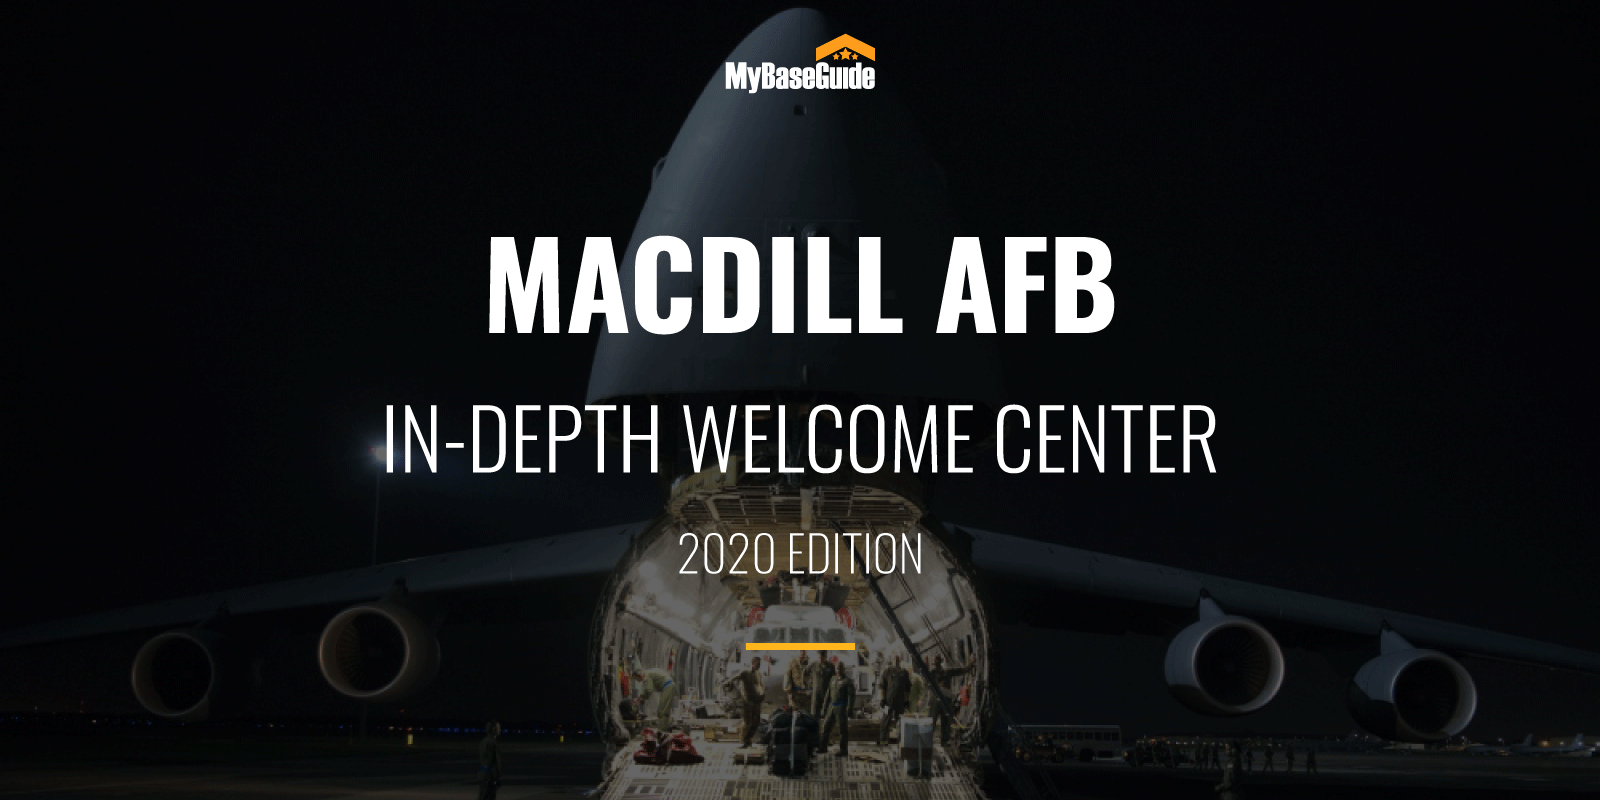 MacDill AFB: In-Depth Welcome Center